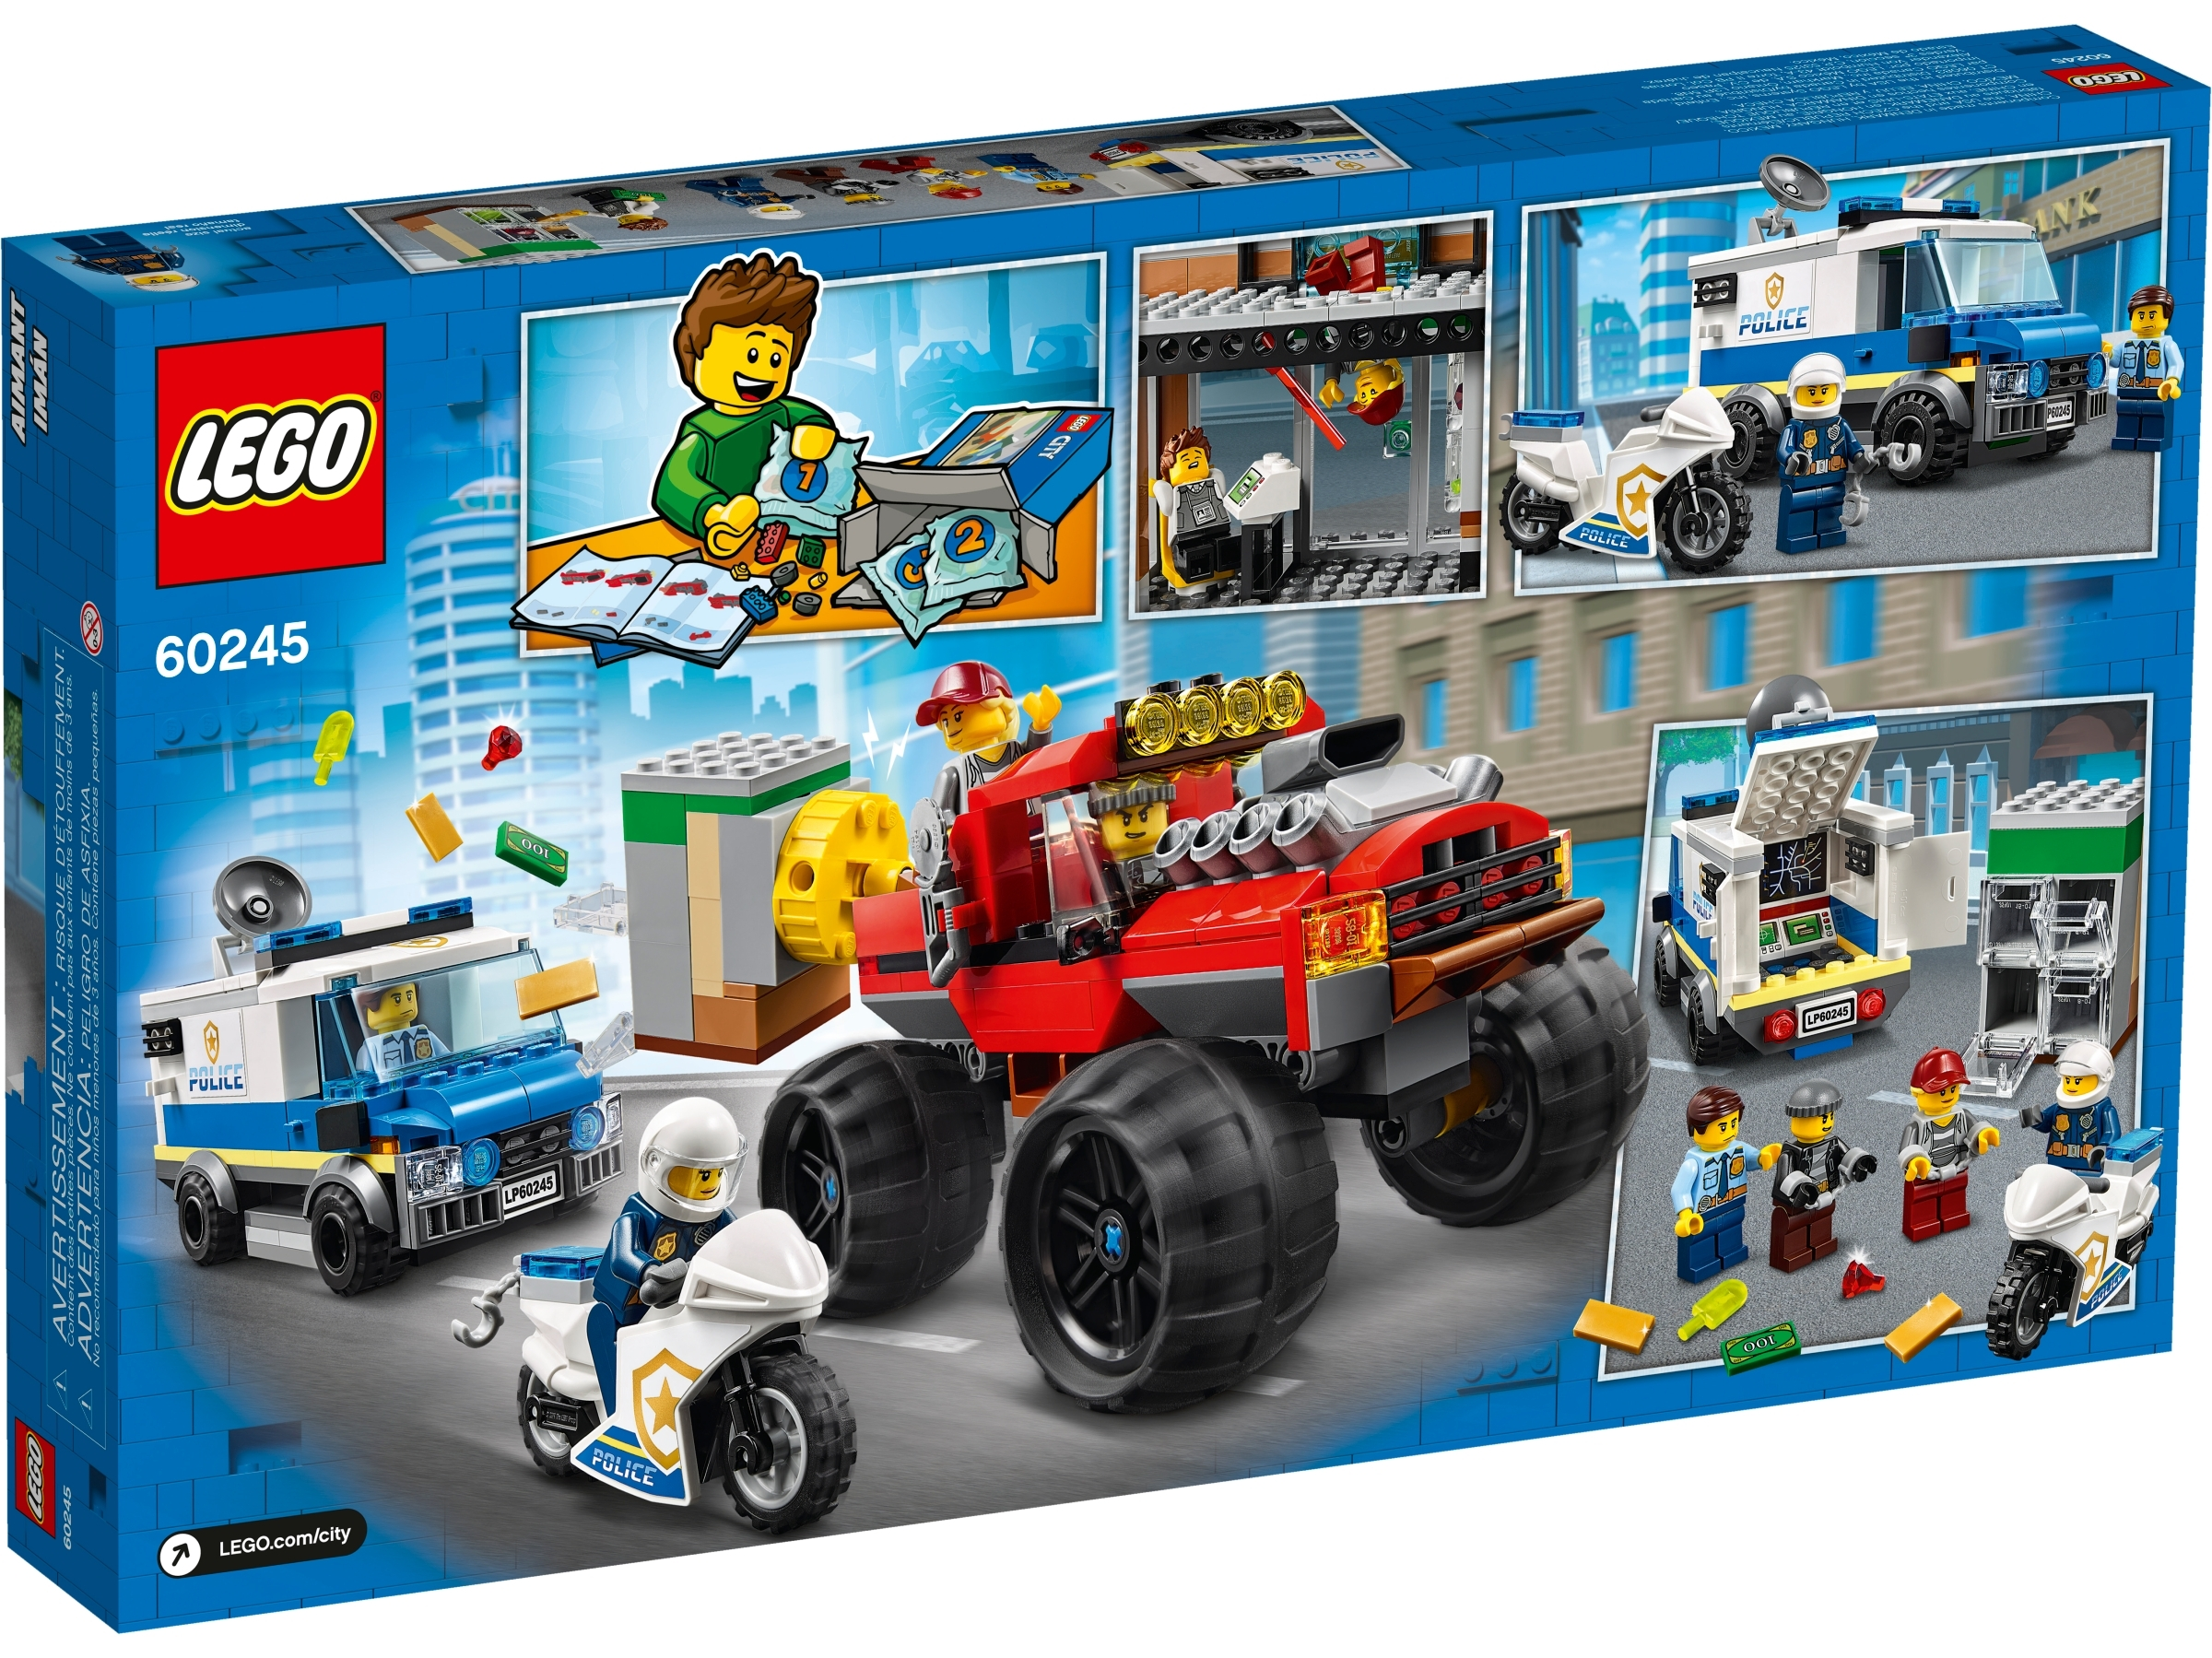 Police Monster Truck Heist 60245 City Buy Online At The Official Lego Shop Us